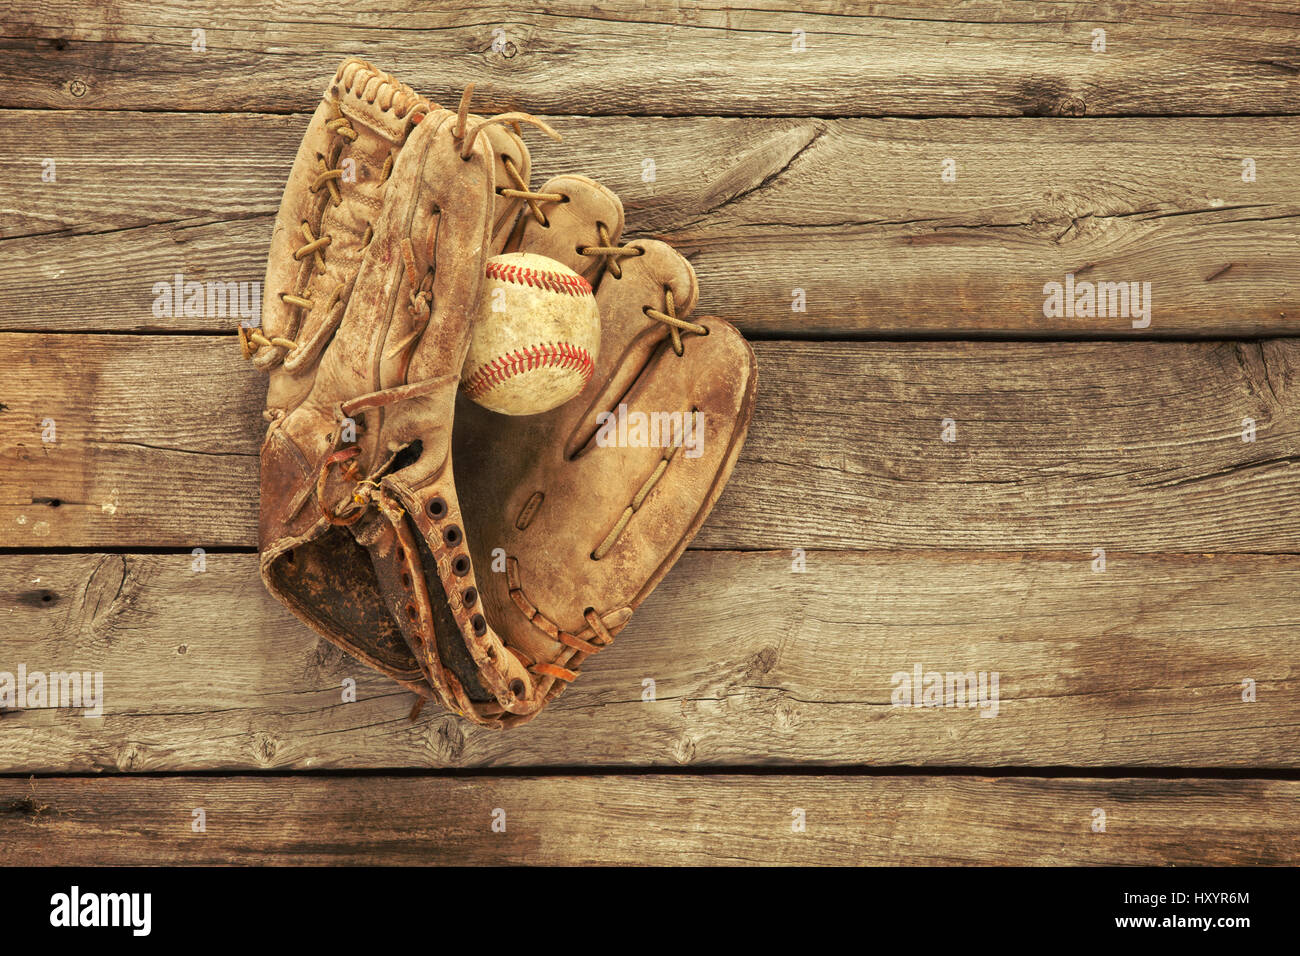 vintage baseball mitt and ball on grungy rough wood background